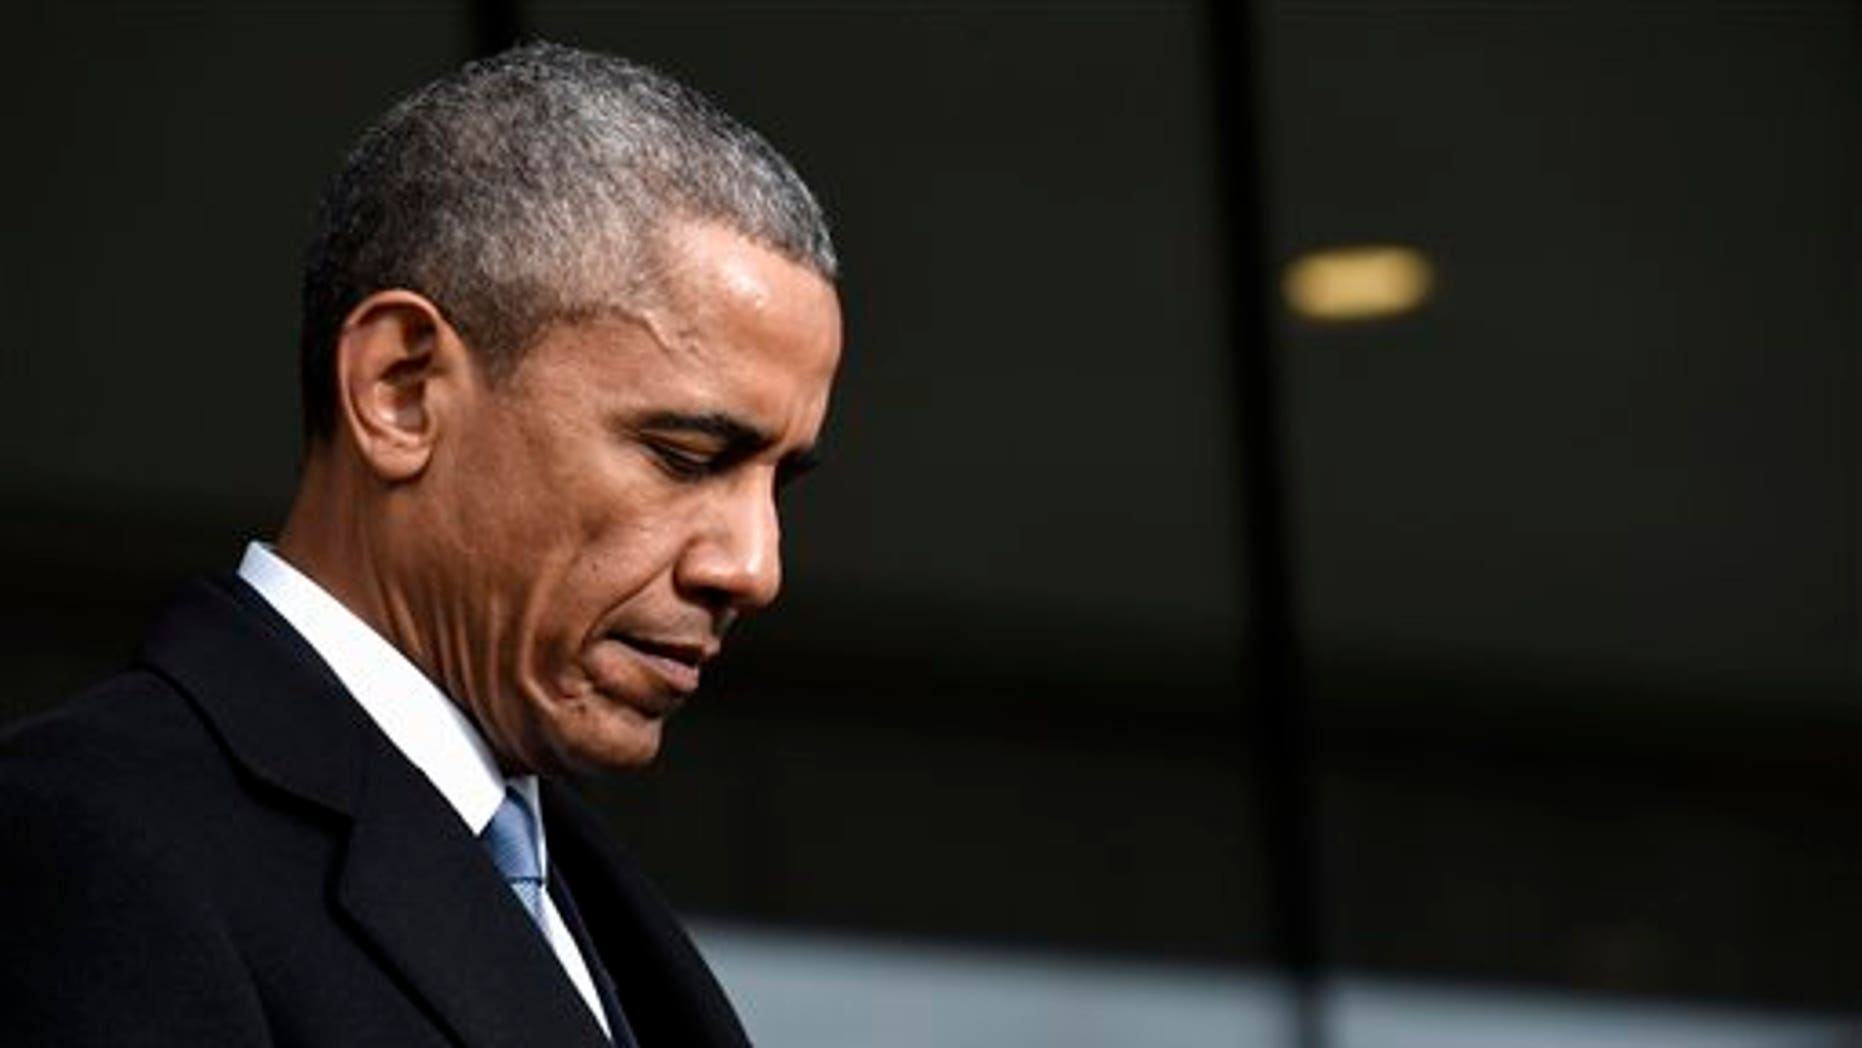 President Barack Obama attends the dedication of the Edward M. Kennedy Institute for the United States Senate in Boston, Monday, March 30, 2015. (AP Photo/Susan Walsh)